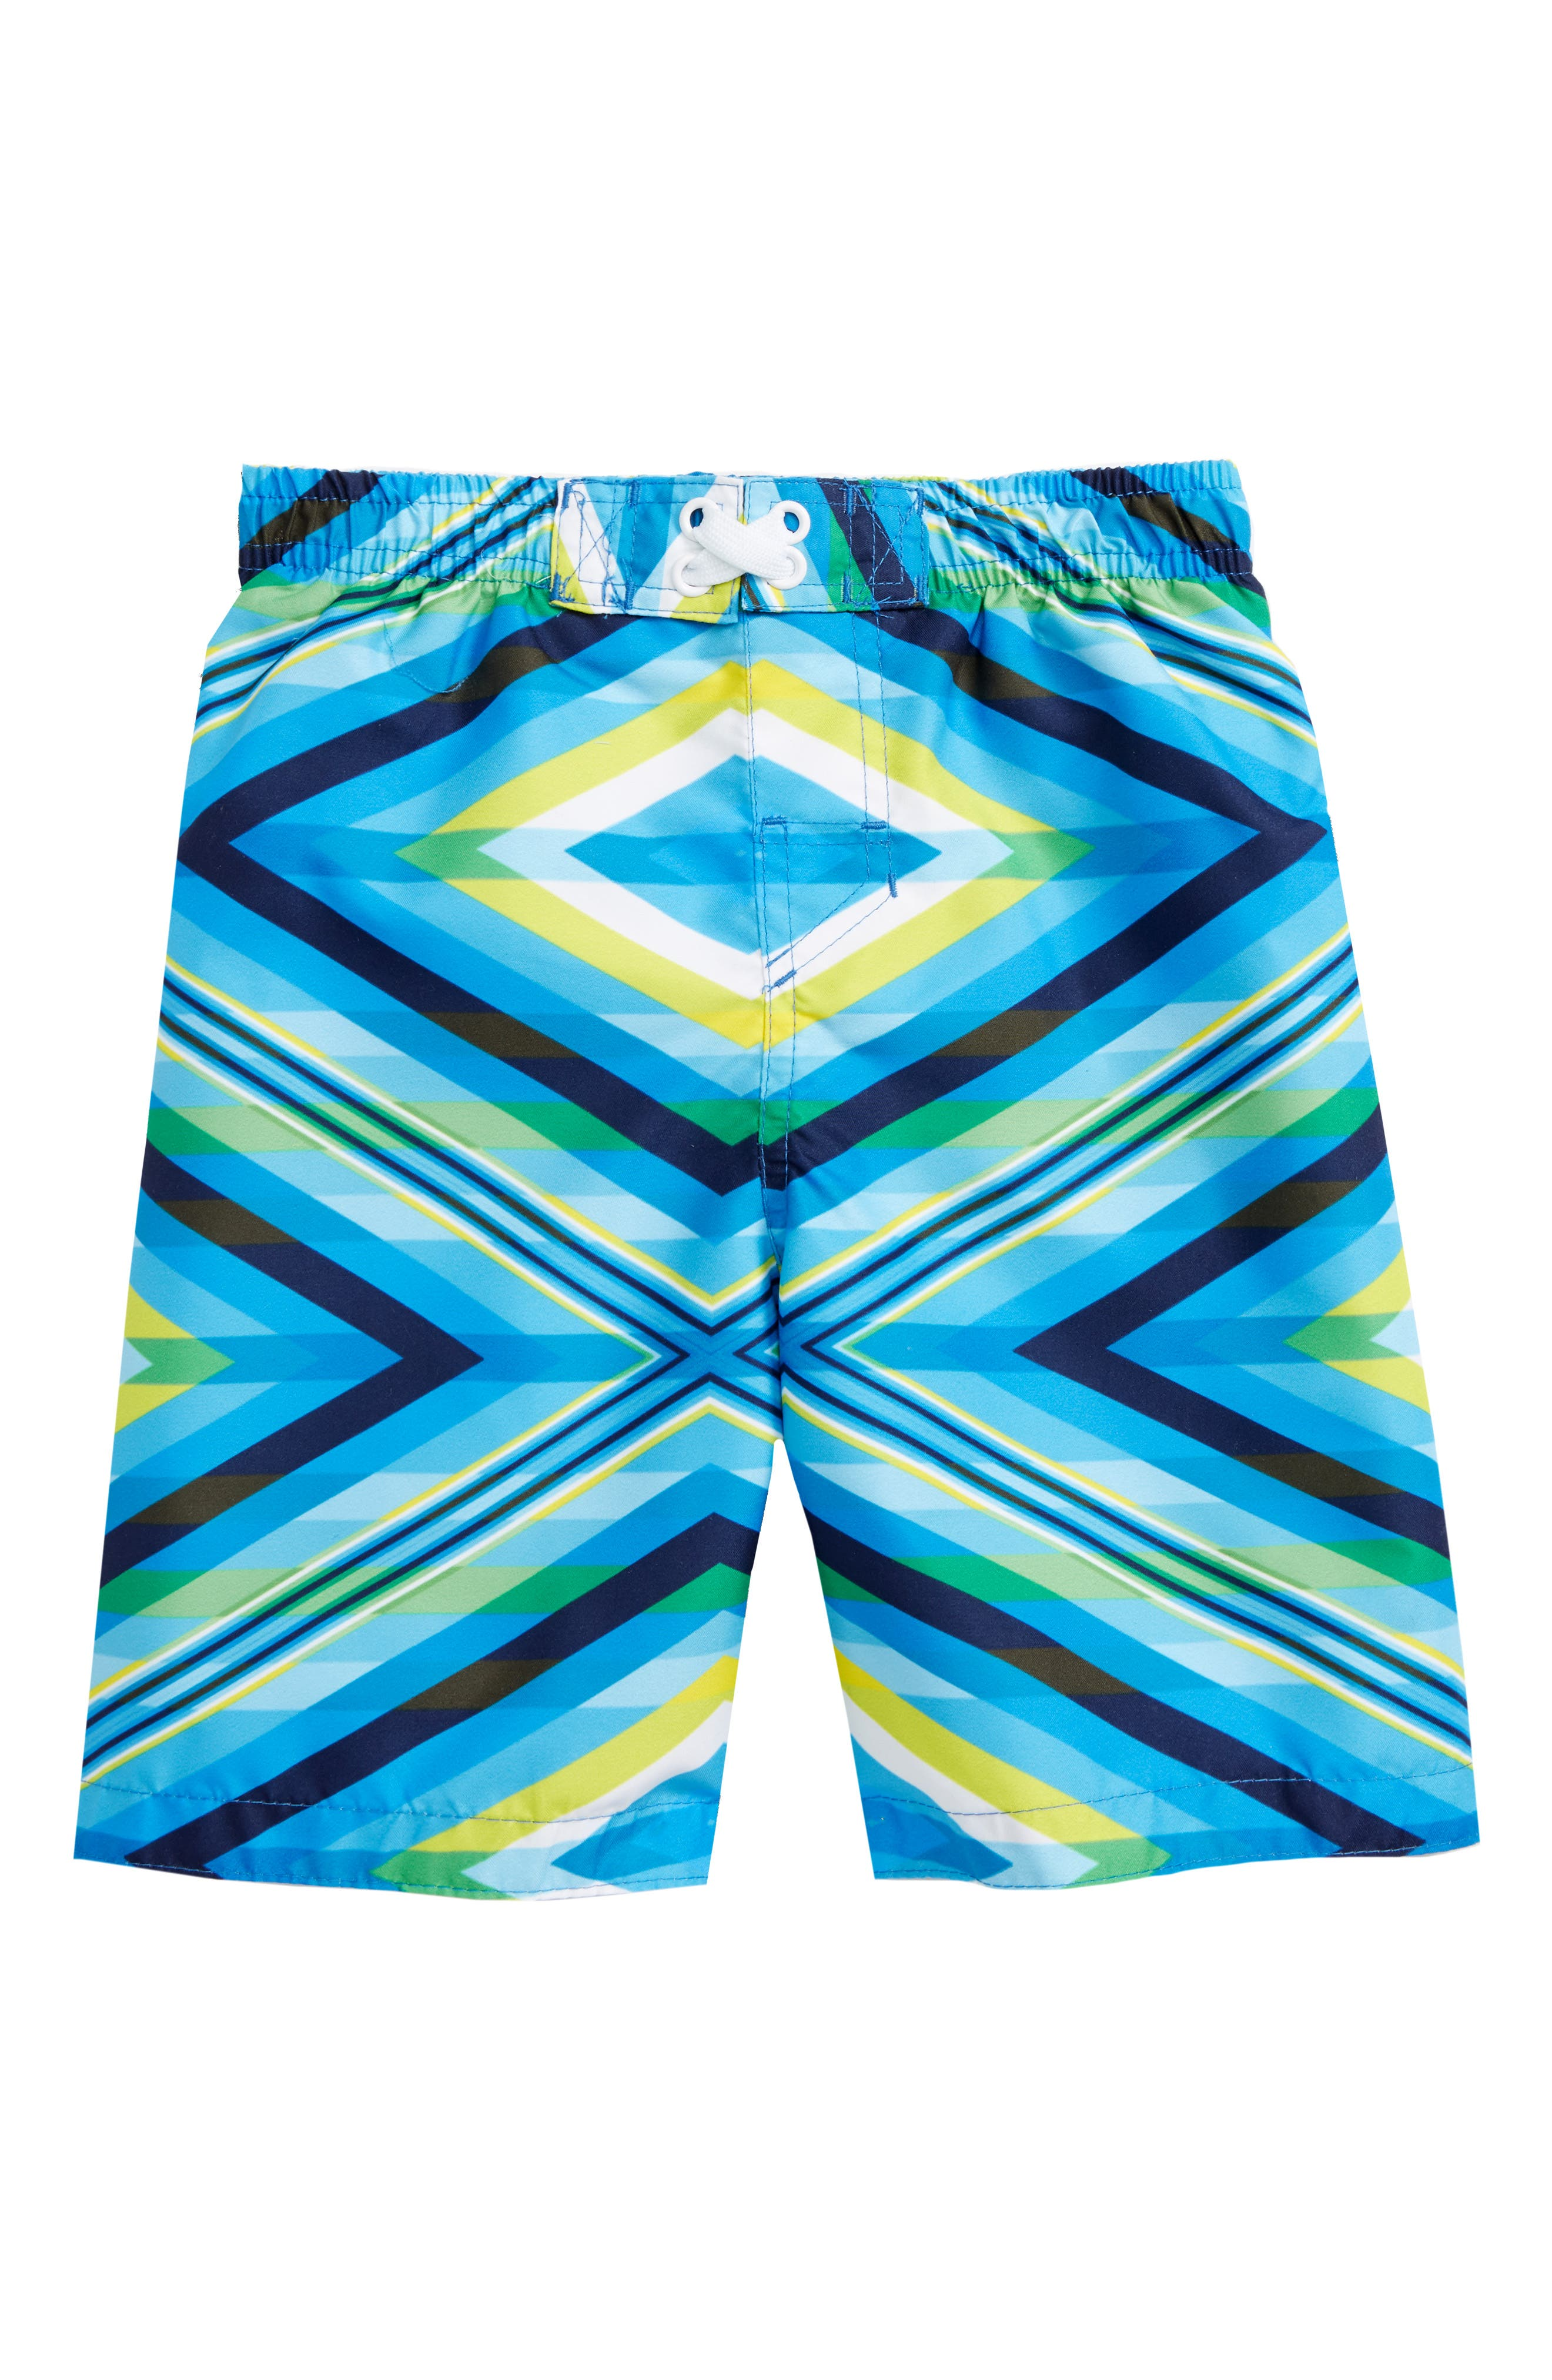 Geo Mirage Swim Trunks,                             Main thumbnail 1, color,